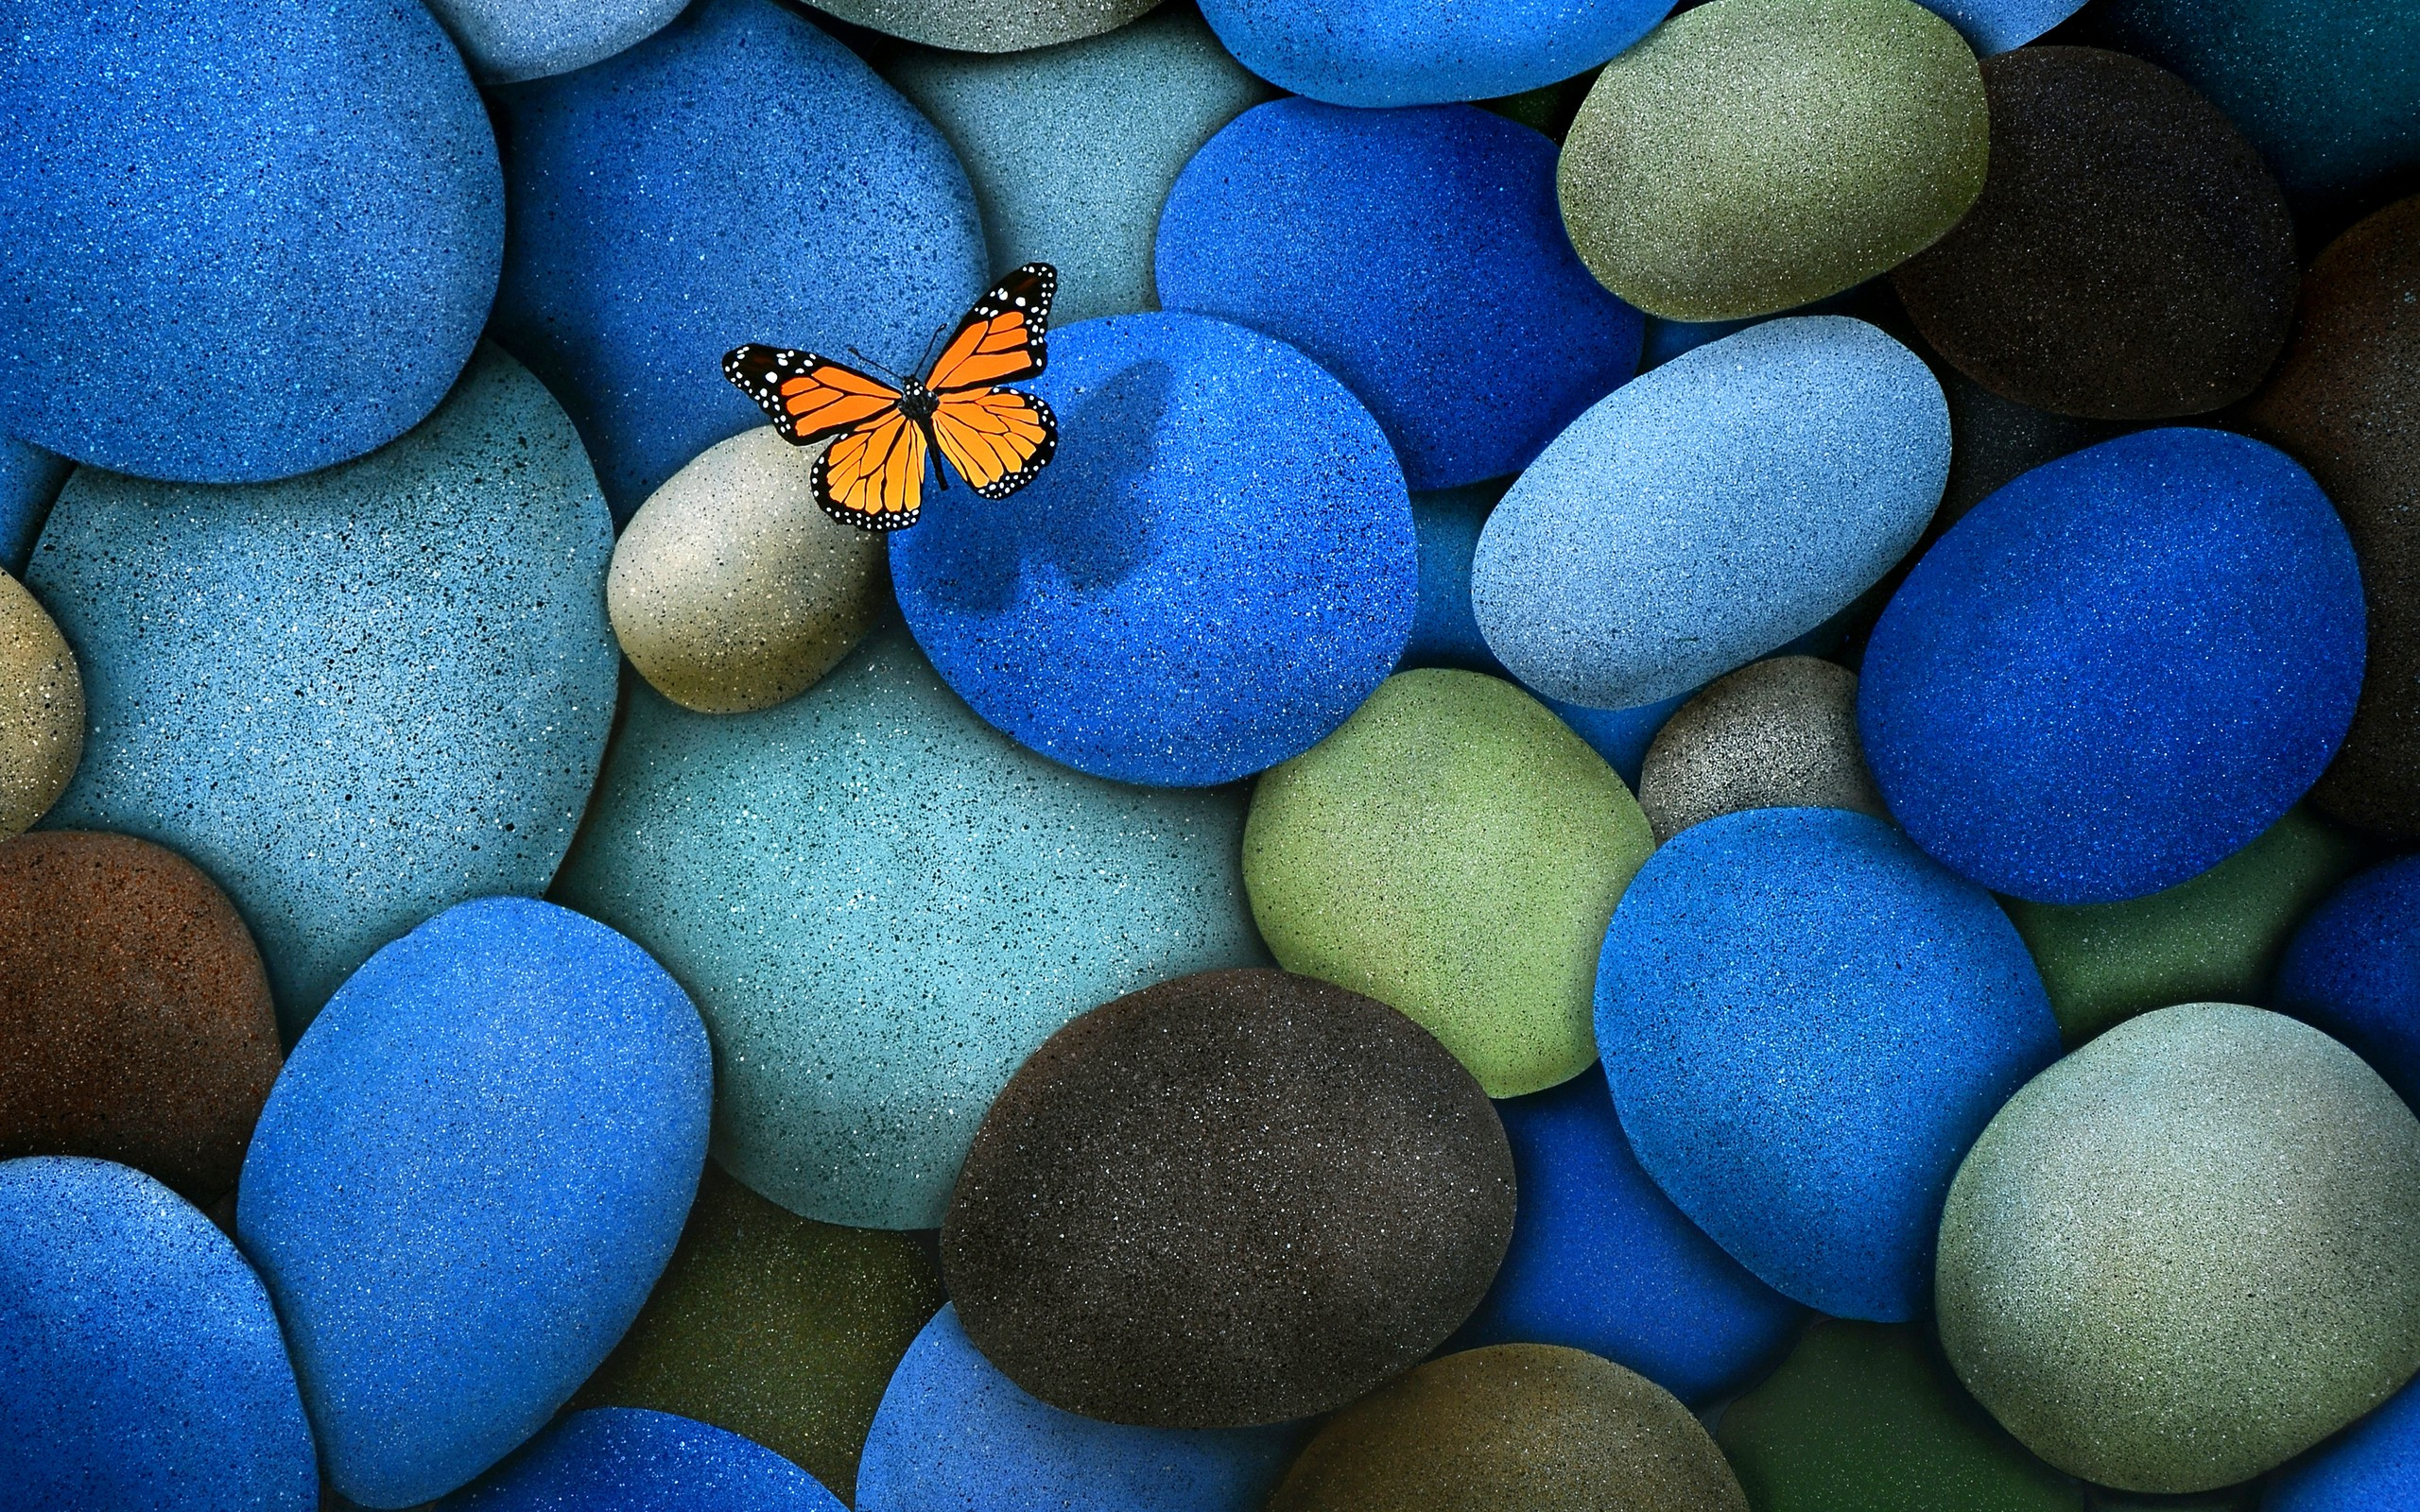 Butterfly On Blue Stones